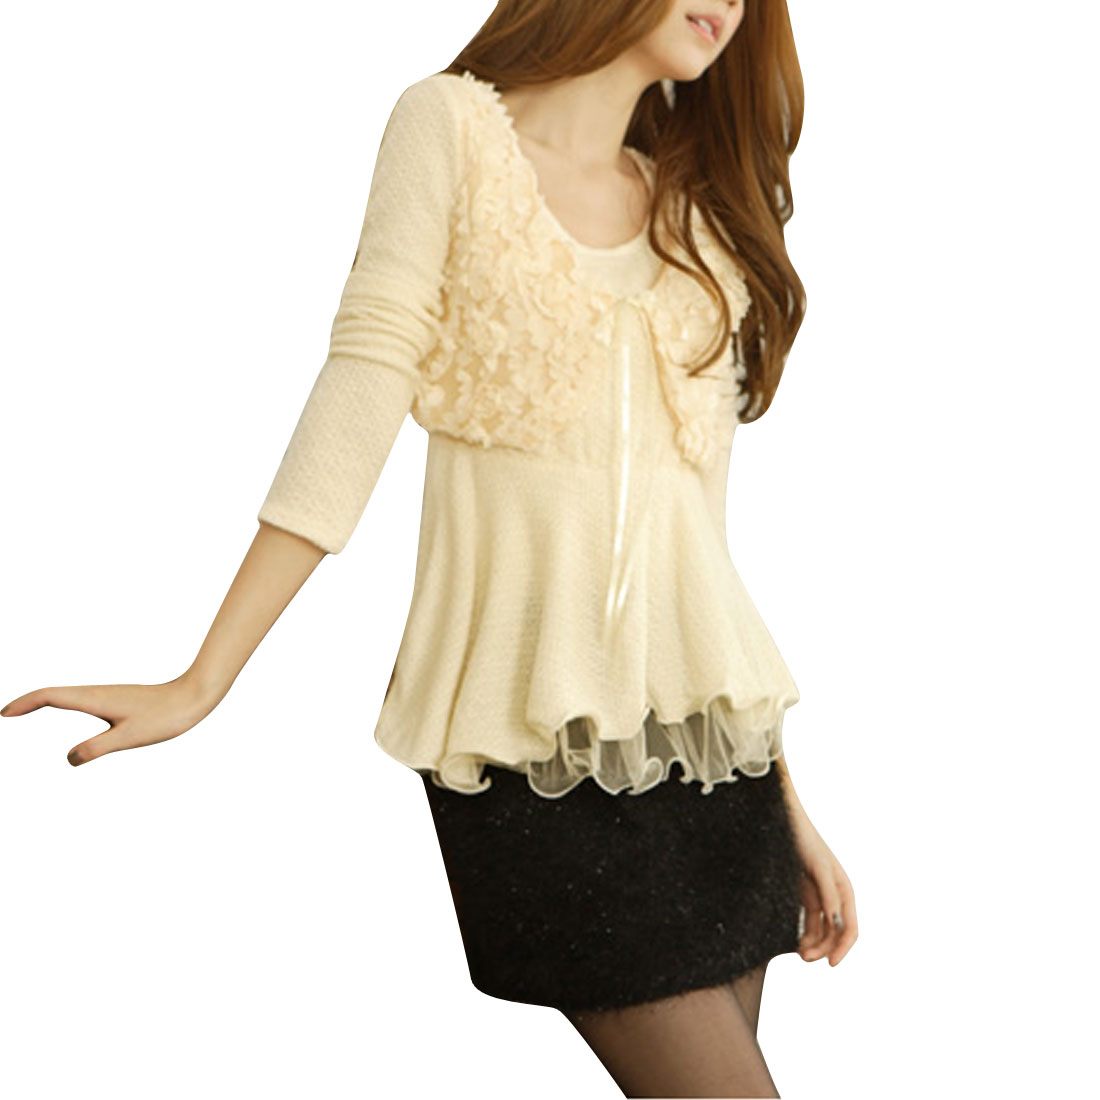 Ladies Round Neck Solid Flower Design Patchwork Beige Knitted Top XS